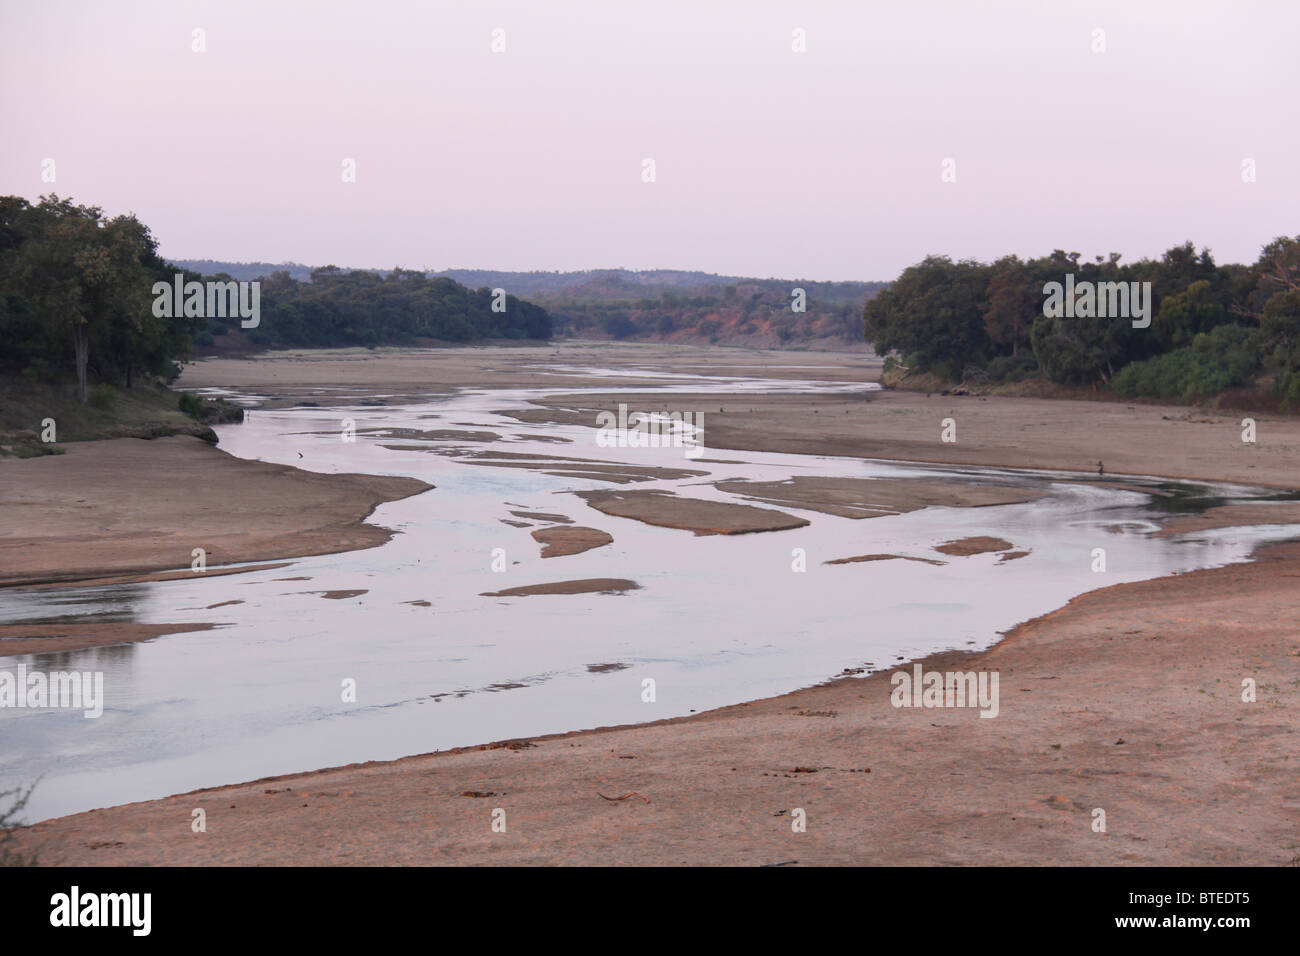 Mwenezi River bed winding with trees on either side of the banks - Stock Image